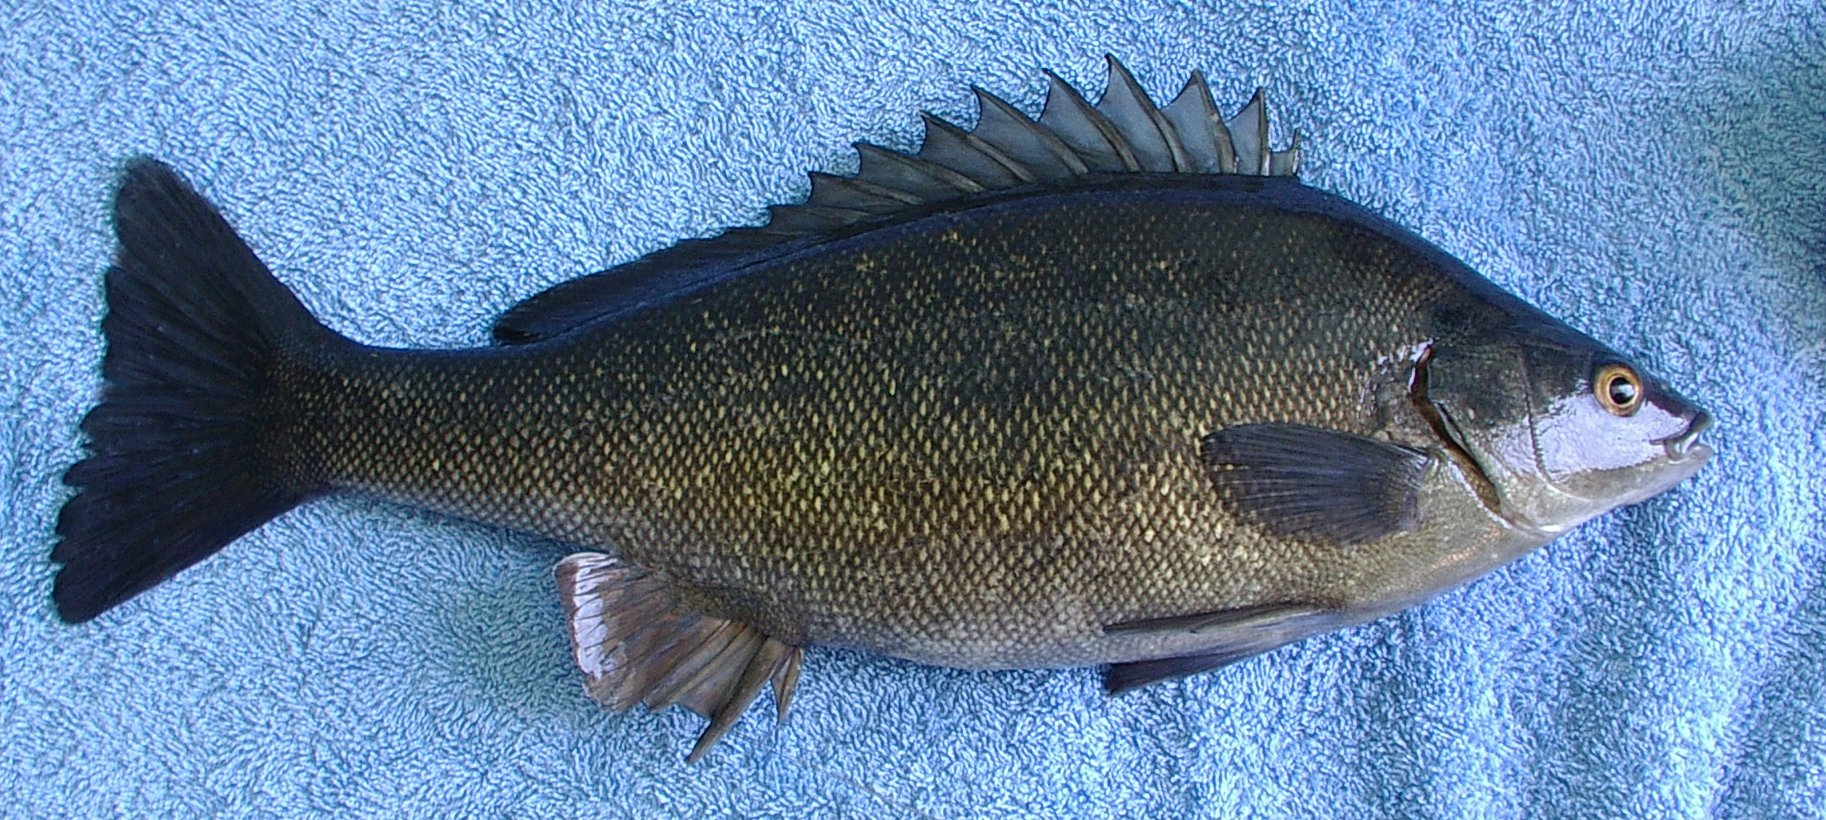 Silver perch bidyanus bidyanus nswaqua is your for Perch fish facts